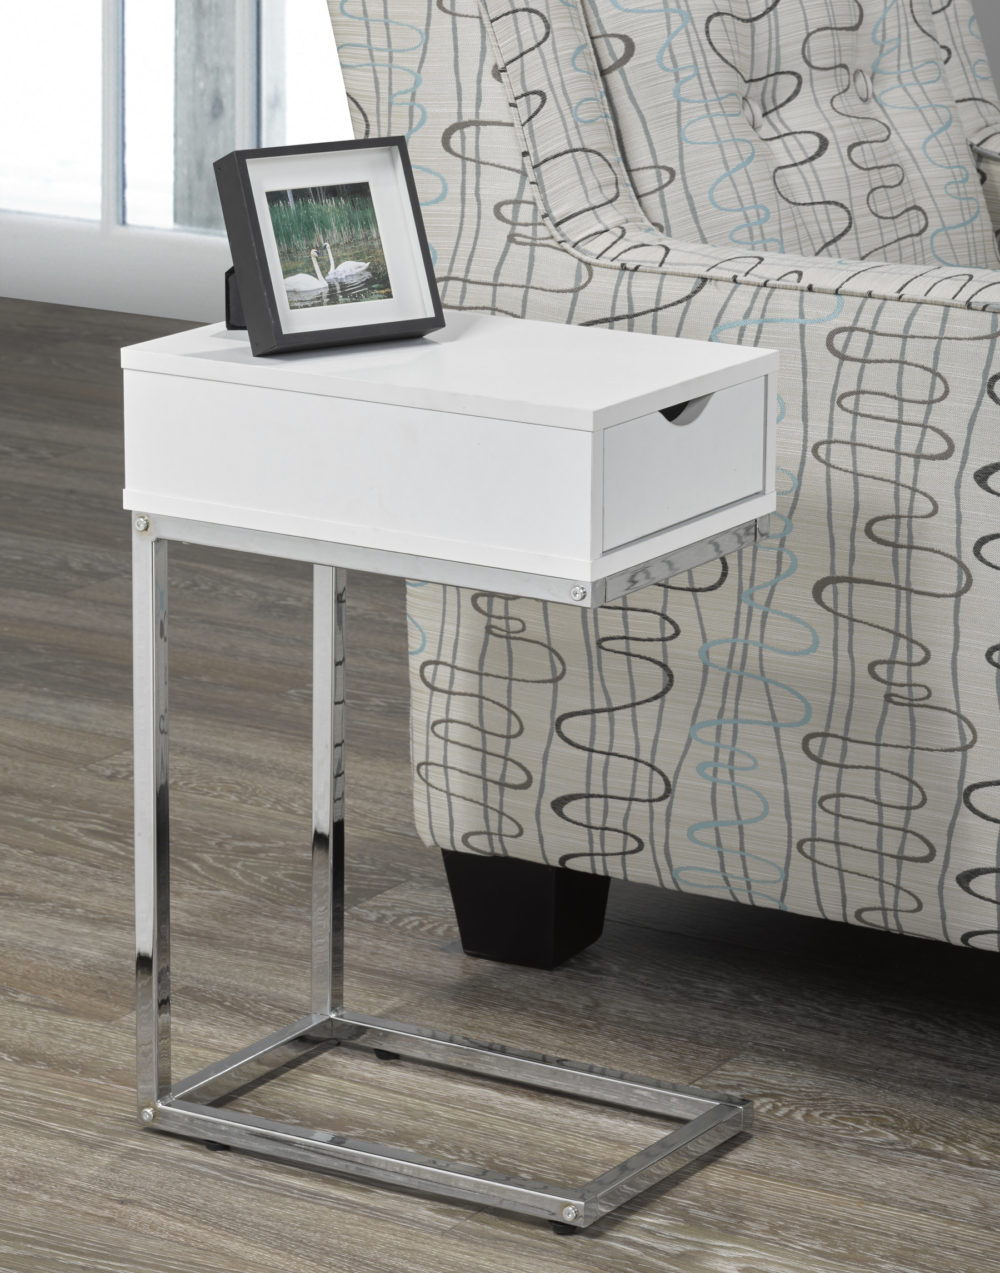 23108 - Side Table - BX-8217-whi